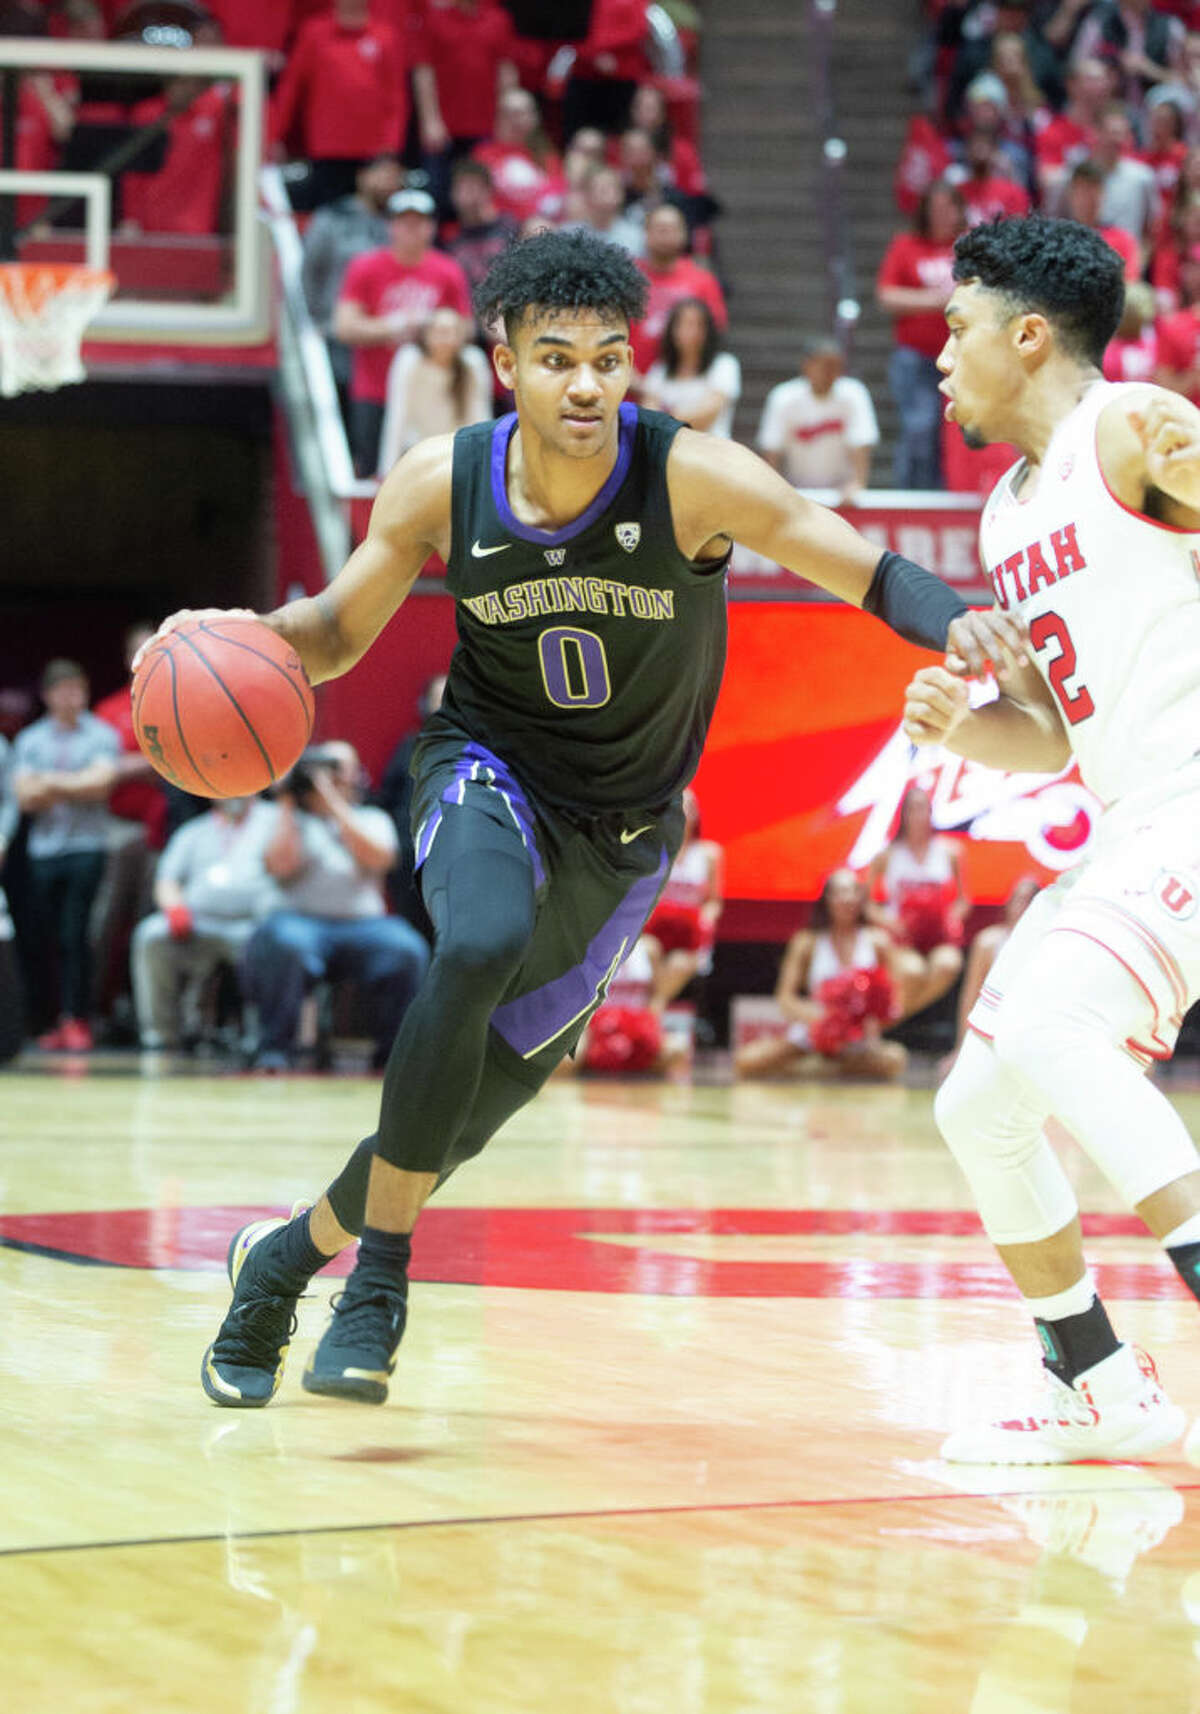 1. Washington Huskies (12-4, 3-0 Pac-12) The Dawgs topped these rankings last week, and staked their claim once again with road wins over Utah and Colorado. The offense has been bolstered by Jaylen Nowell and Noah Dickerson, with both continuing to average double figures on better-than 50 percent shooting. This week, they'll have two winnable games against vulnerable Cal and Stanford teams.